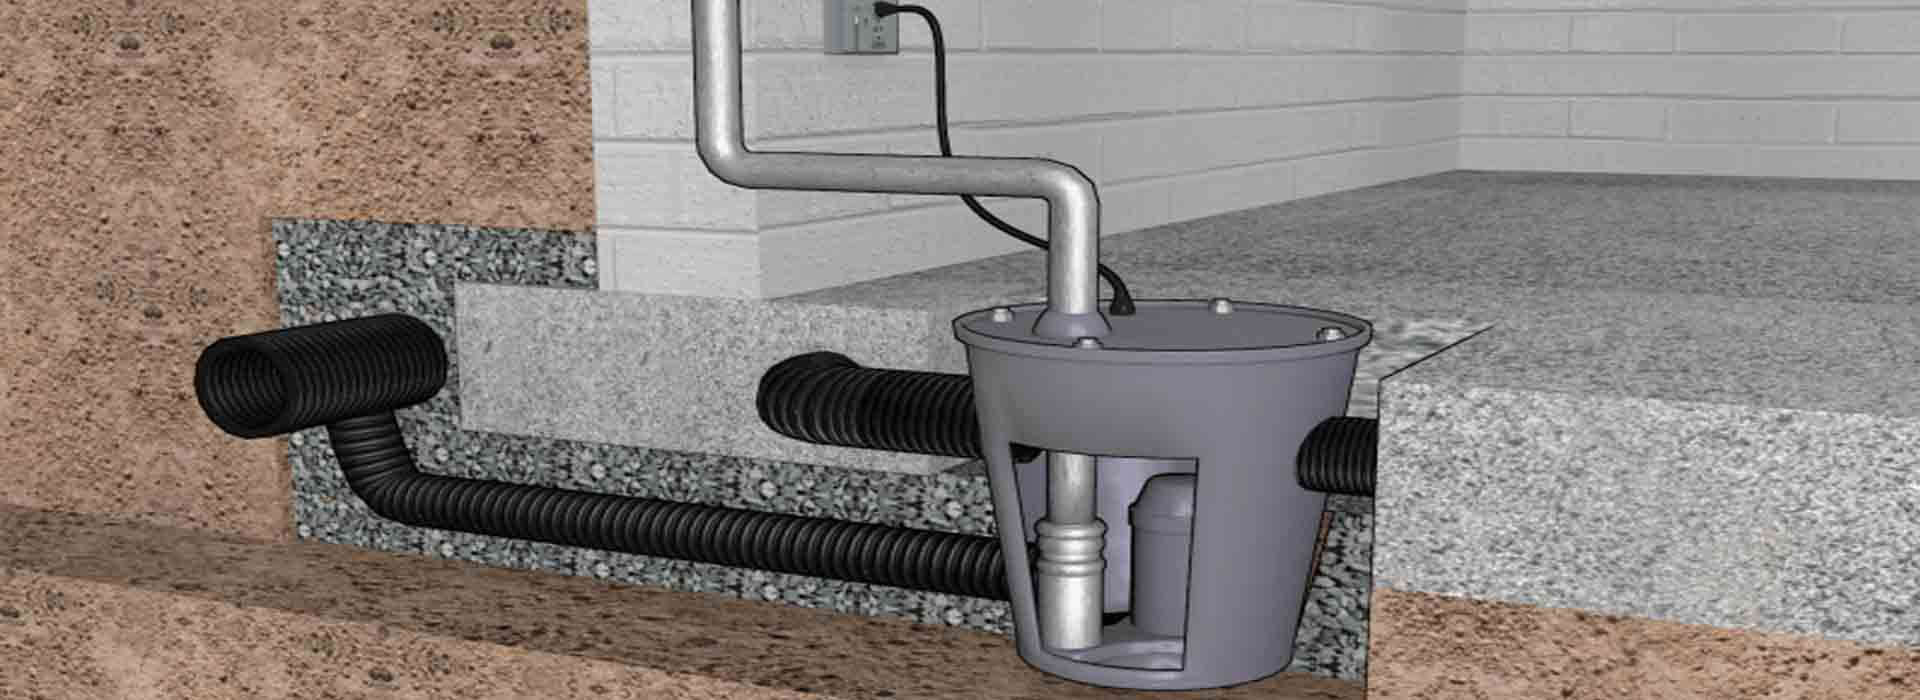 How Sump Pumps Work